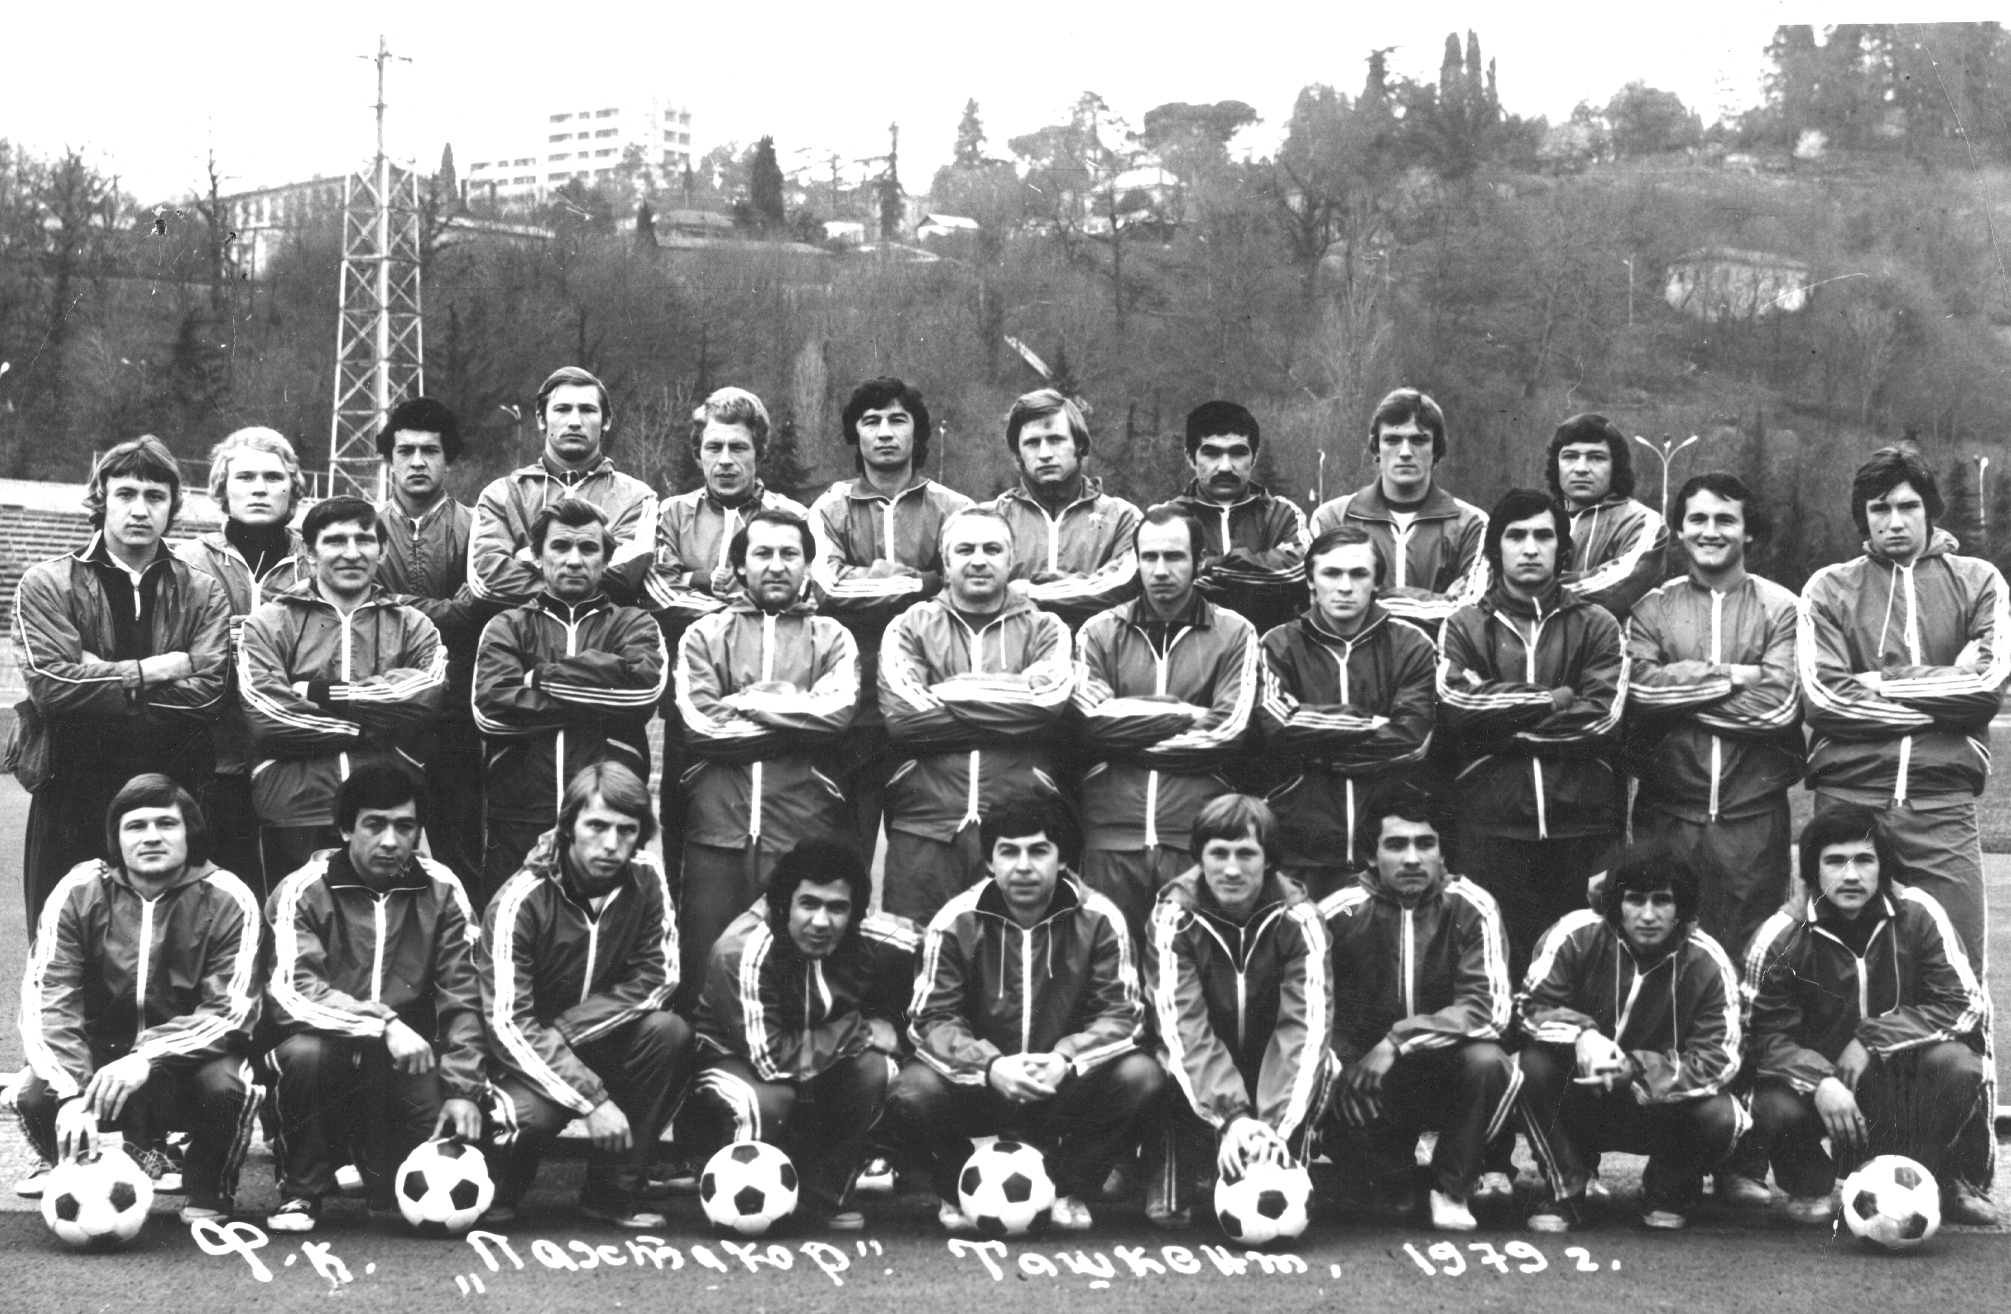 Pakhtakor team photo in the city of Sochi, Spring 1979